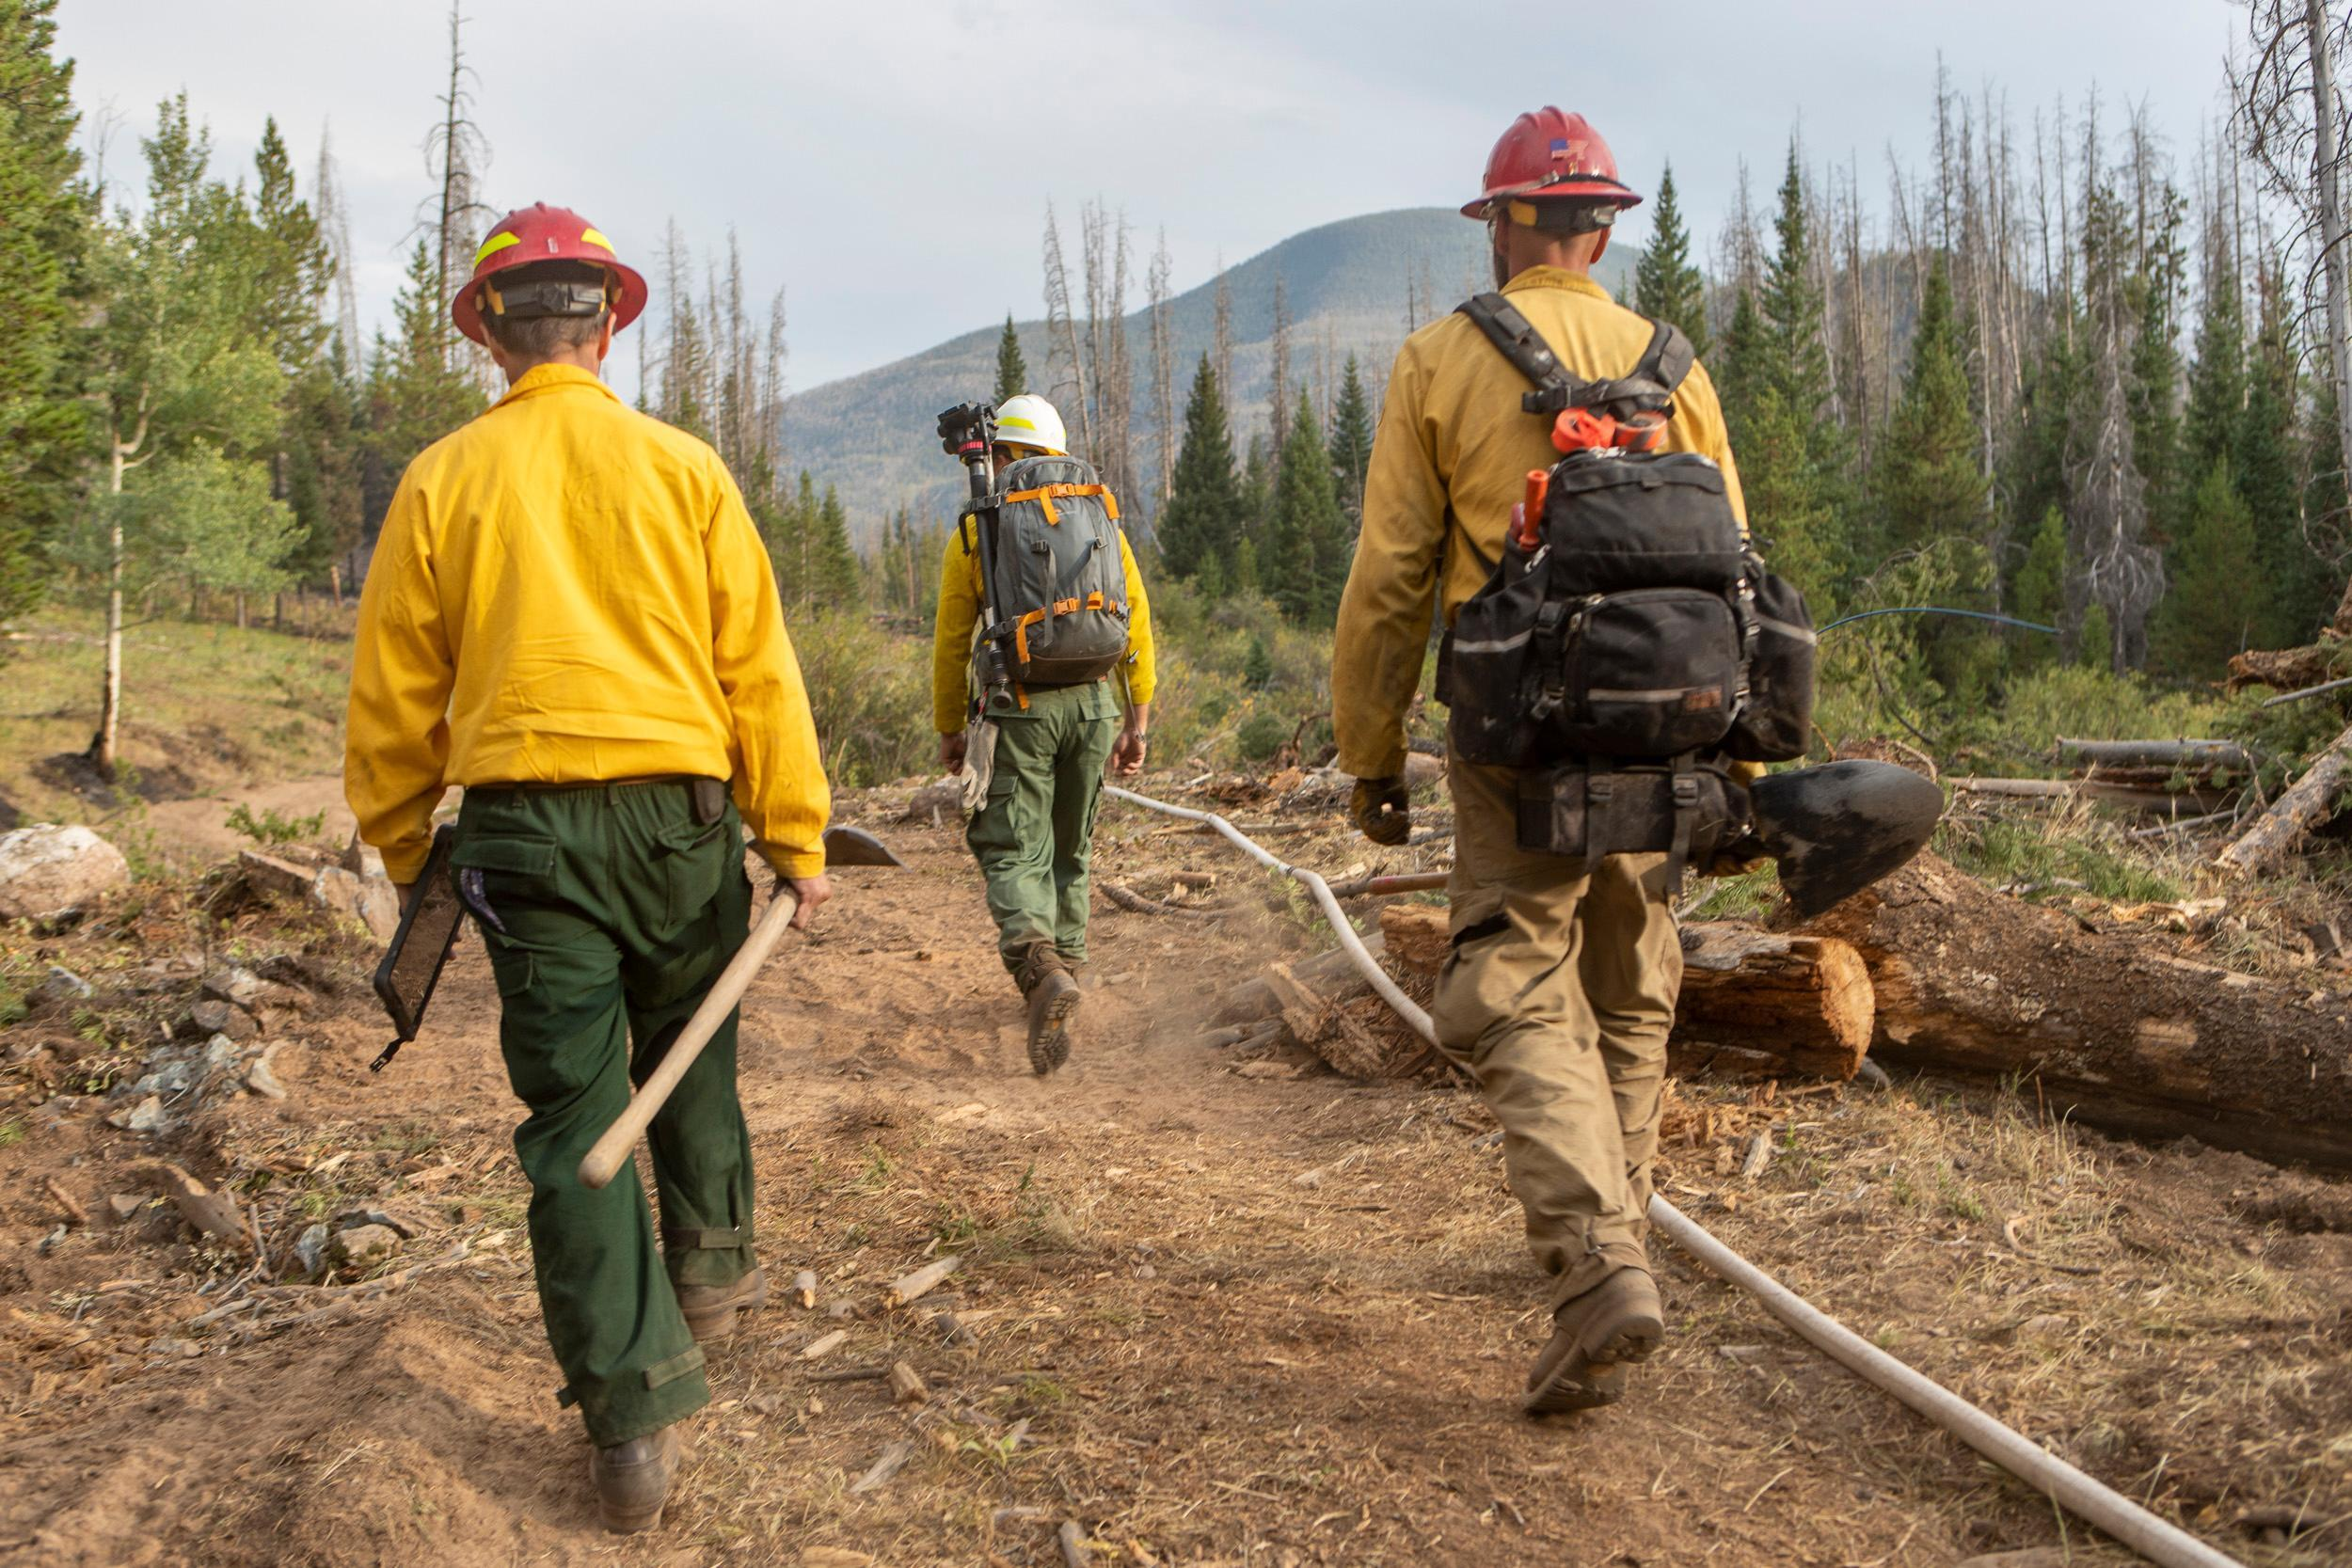 Chuck Rhodes, Research Biogeochemist with the Rocky Mountain Research Station hikes containment line with Task Force Leader Erik Bloom during an educational video shoot with Videographer Aaron Colussi, center front, at the Williams Fork Fire.